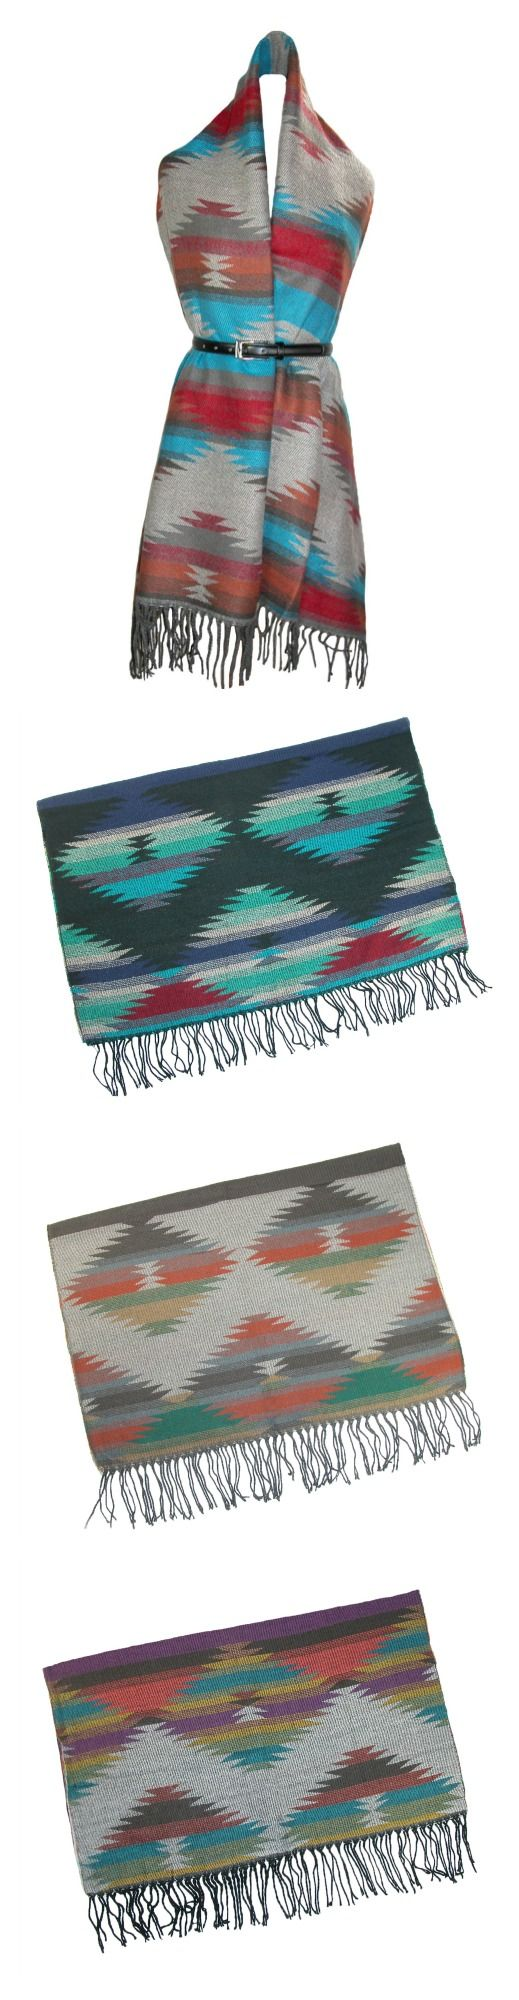 This fall and winter, wrap yourself in superior softness with this large blanket scarf. Rich colors make up the Native American southwestern design, and the five different color options will allow you to match any outfit. These blanket scarves are a must-have fall and winter fashion staple!